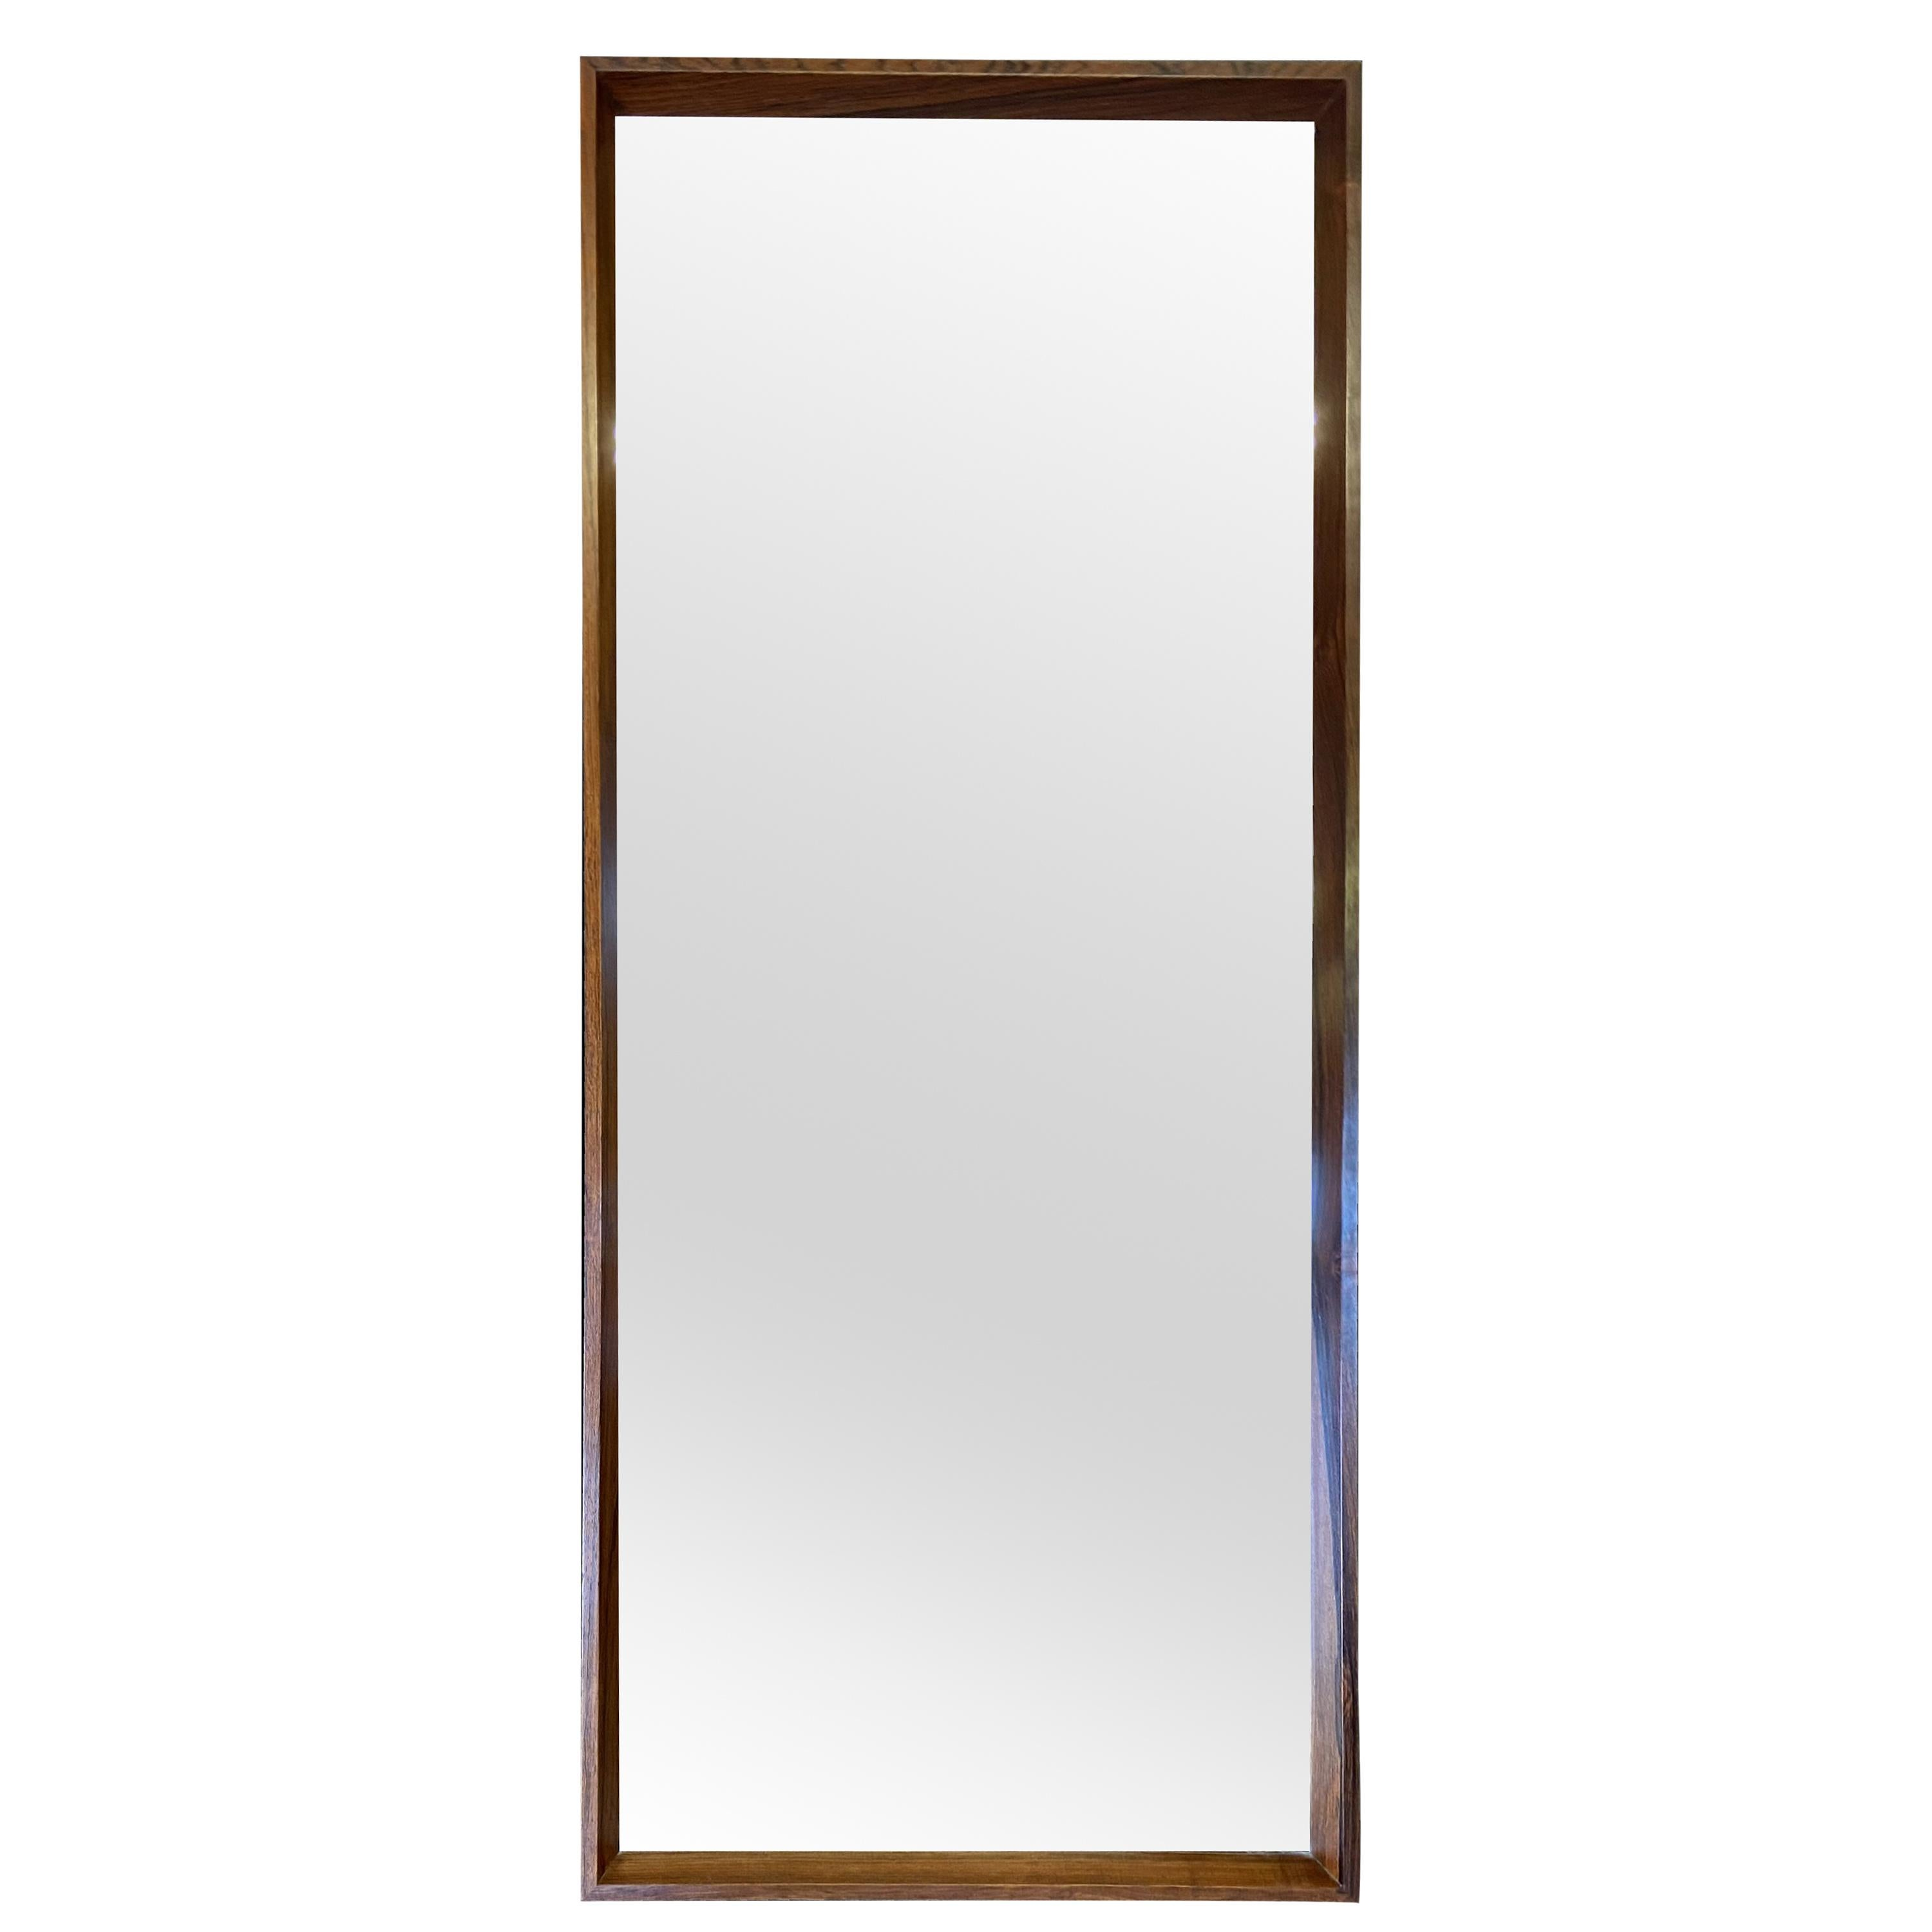 Danish Scandinavian Modern Wall Mirror